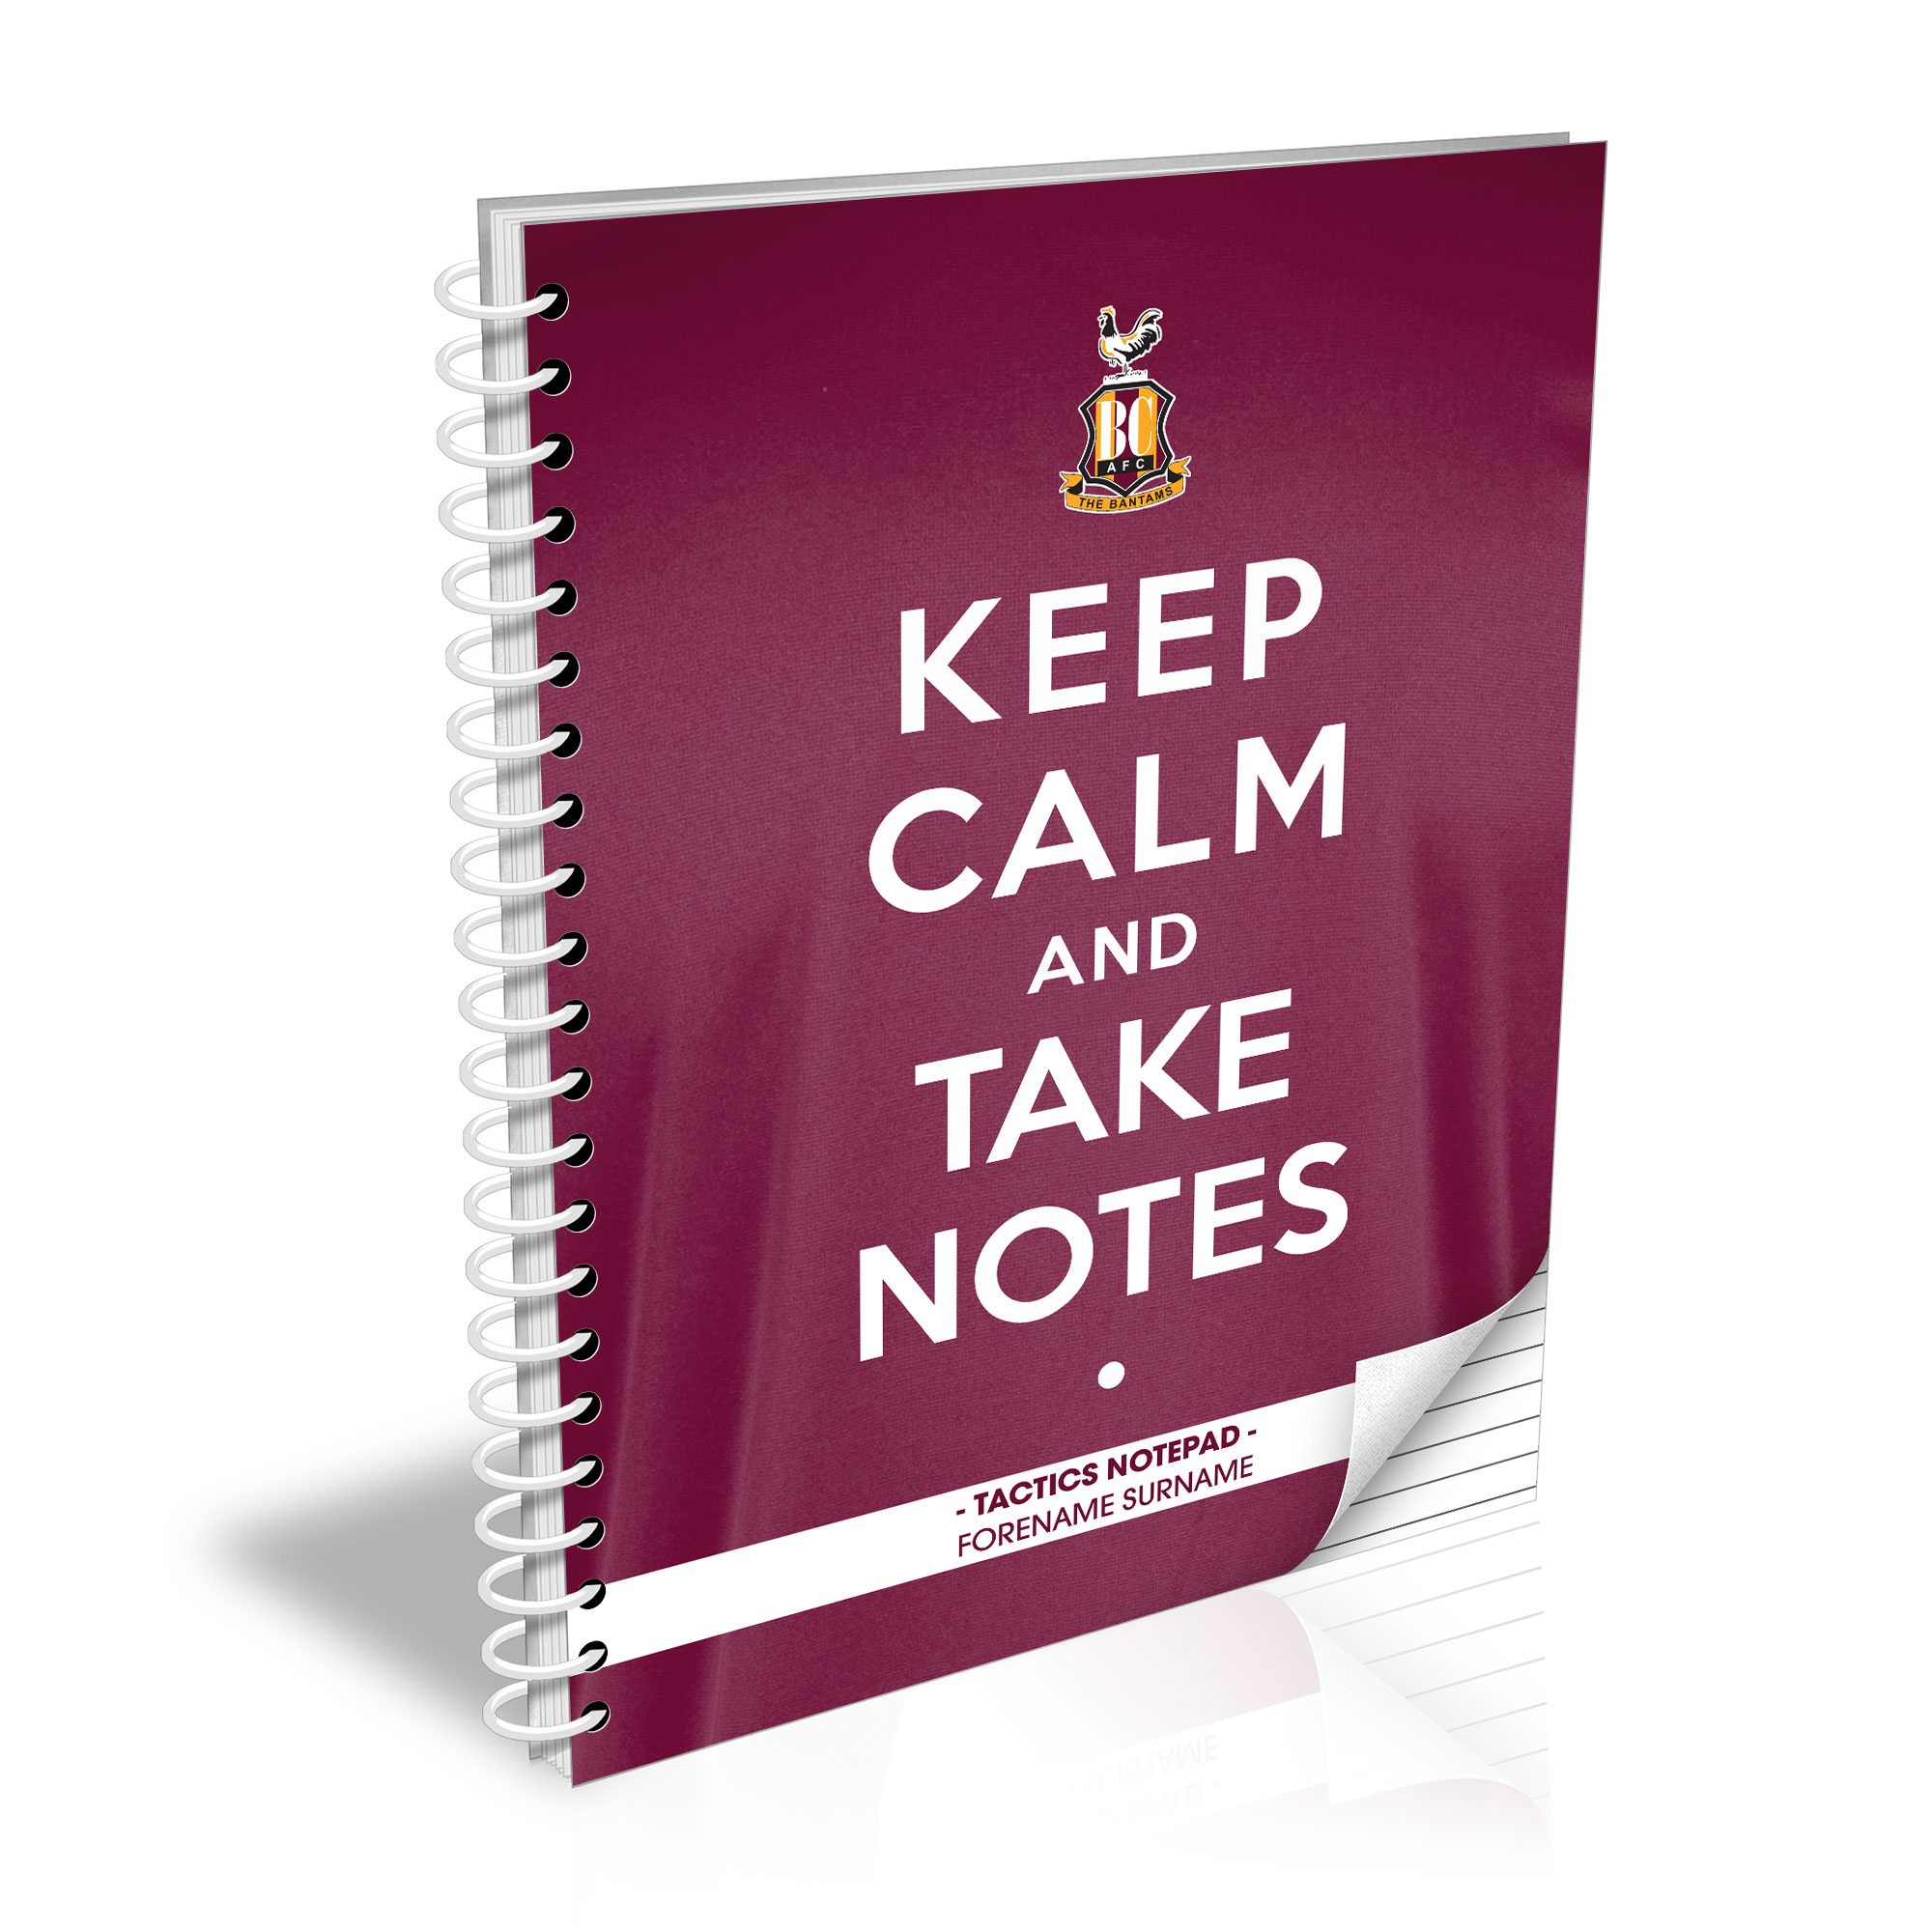 Bradford City AFC Keep Calm Notebook